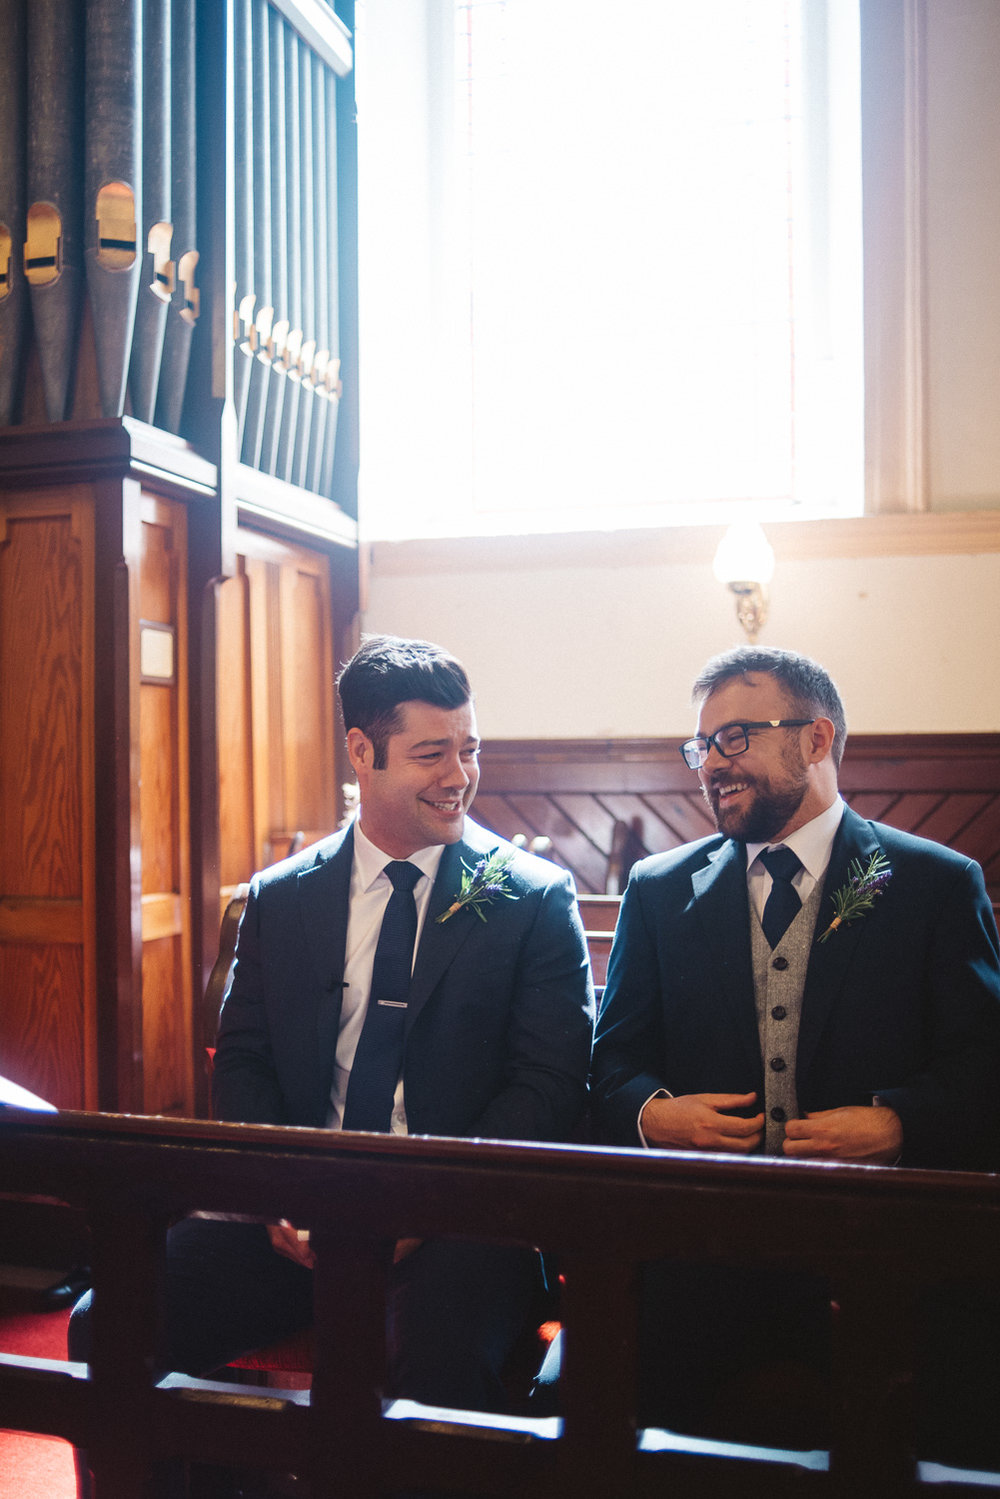 Groom in church laughing with his brother